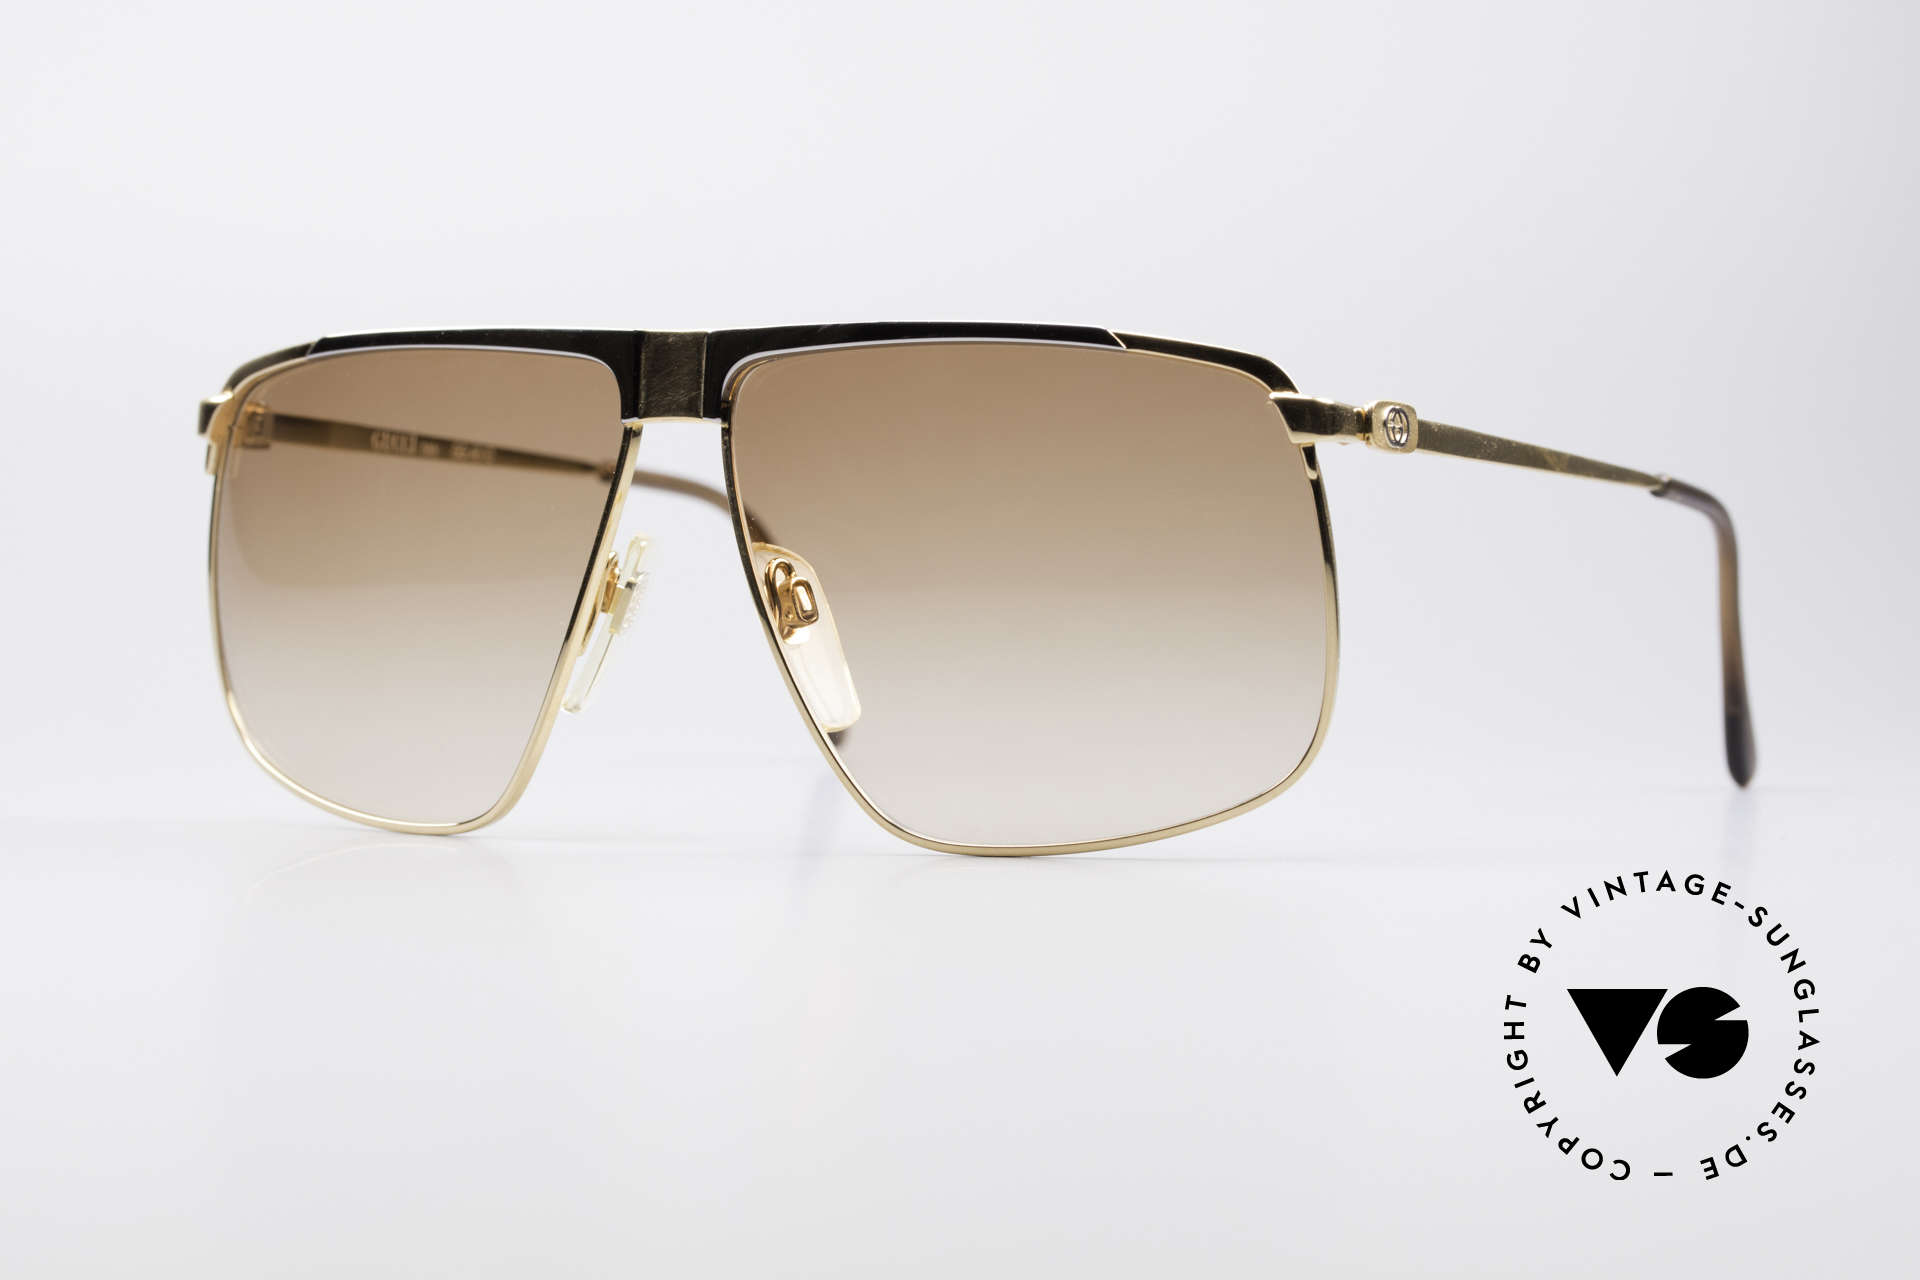 Gucci GG40 22kt Gold-Plated Sunglasses, vintage Gucci GG40 luxury shades, 22kt gold-plated, Made for Men